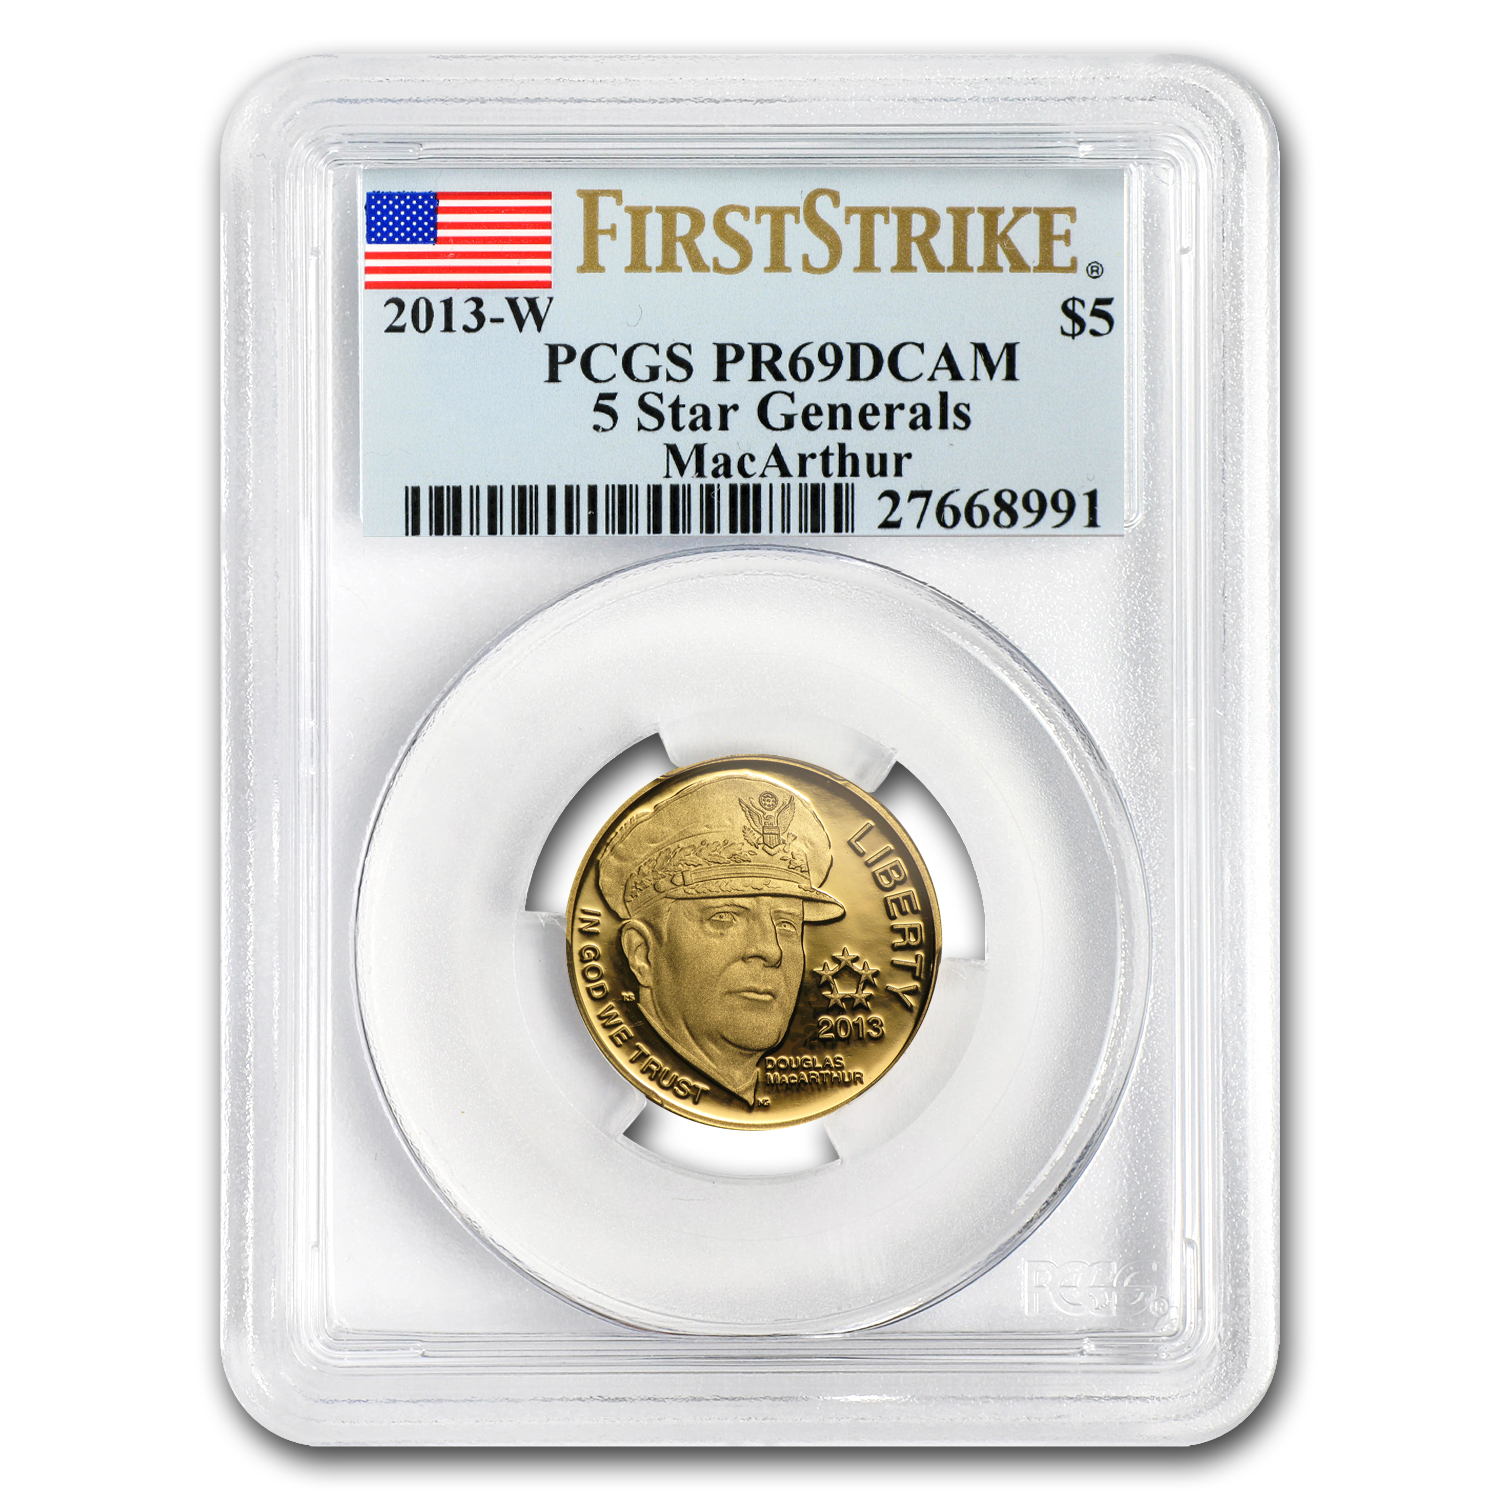 2013-W Gold $5 Commem Five Star General PR-69 PCGS (FS)